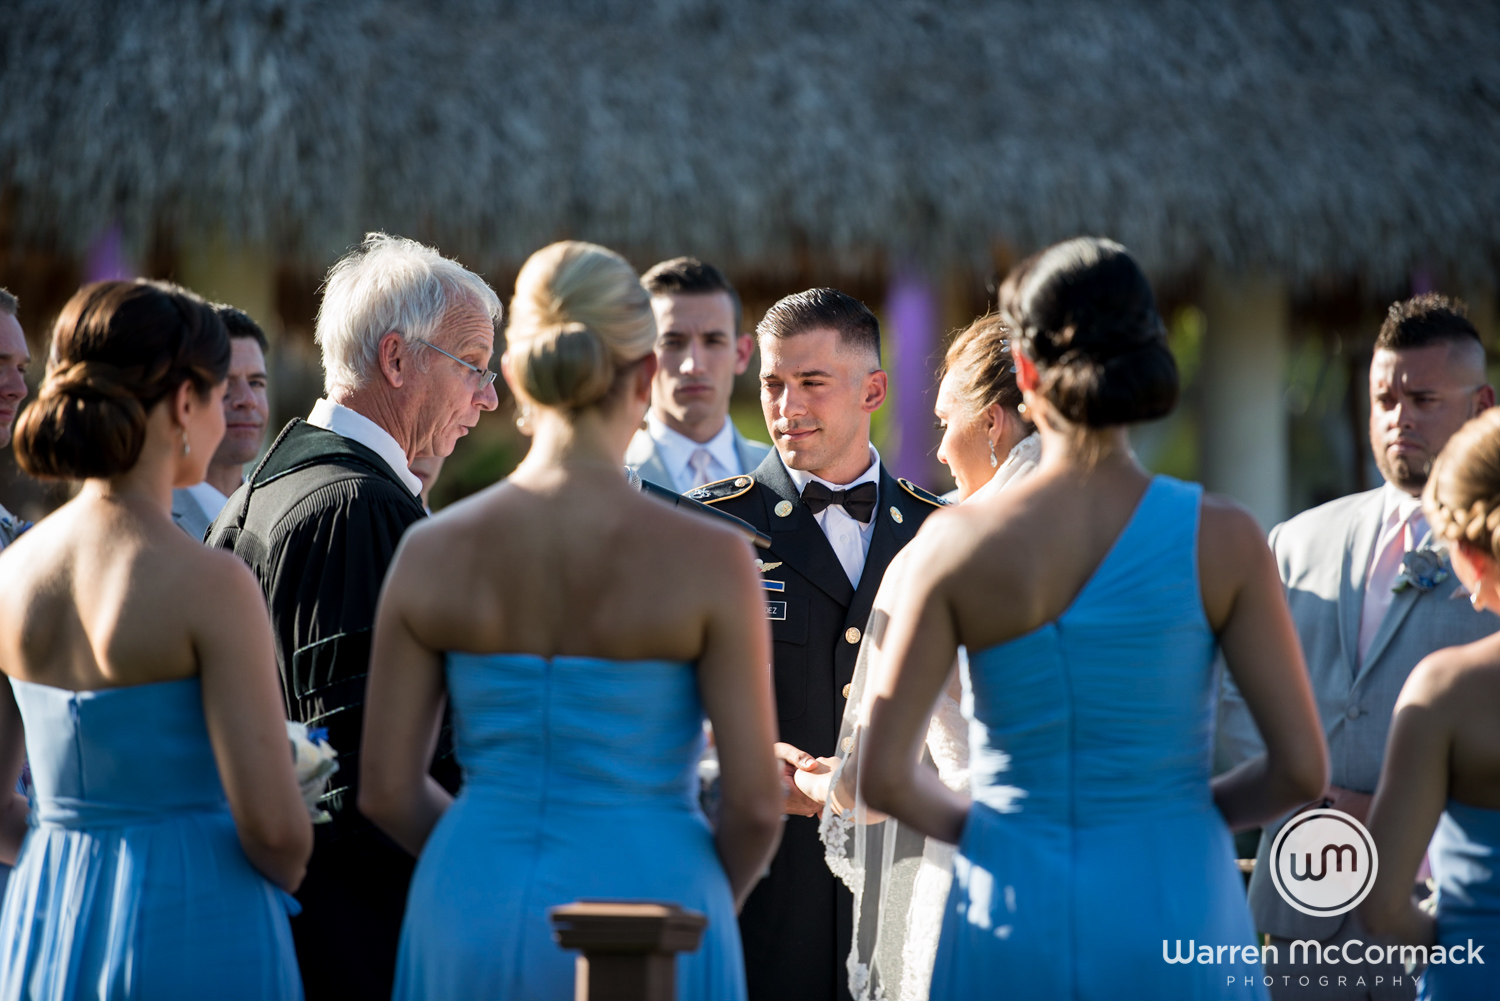 Logan's Place Miami Wedding - Warren McCormack Photographer62.jpg